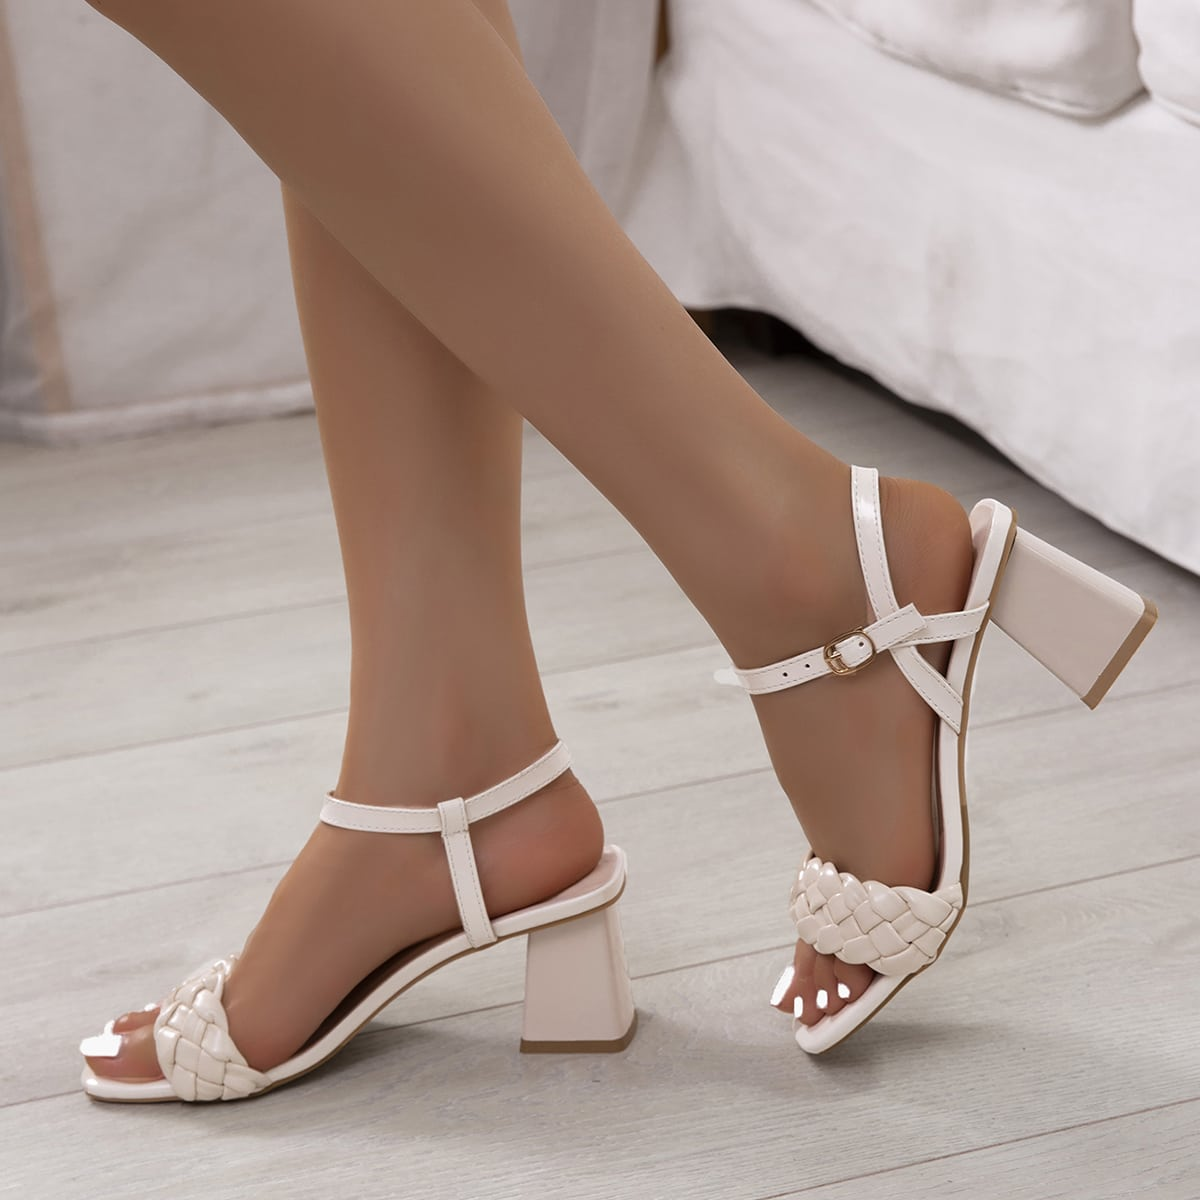 Minimalist Braided Chunky Heeled Sandals, SHEIN  - buy with discount